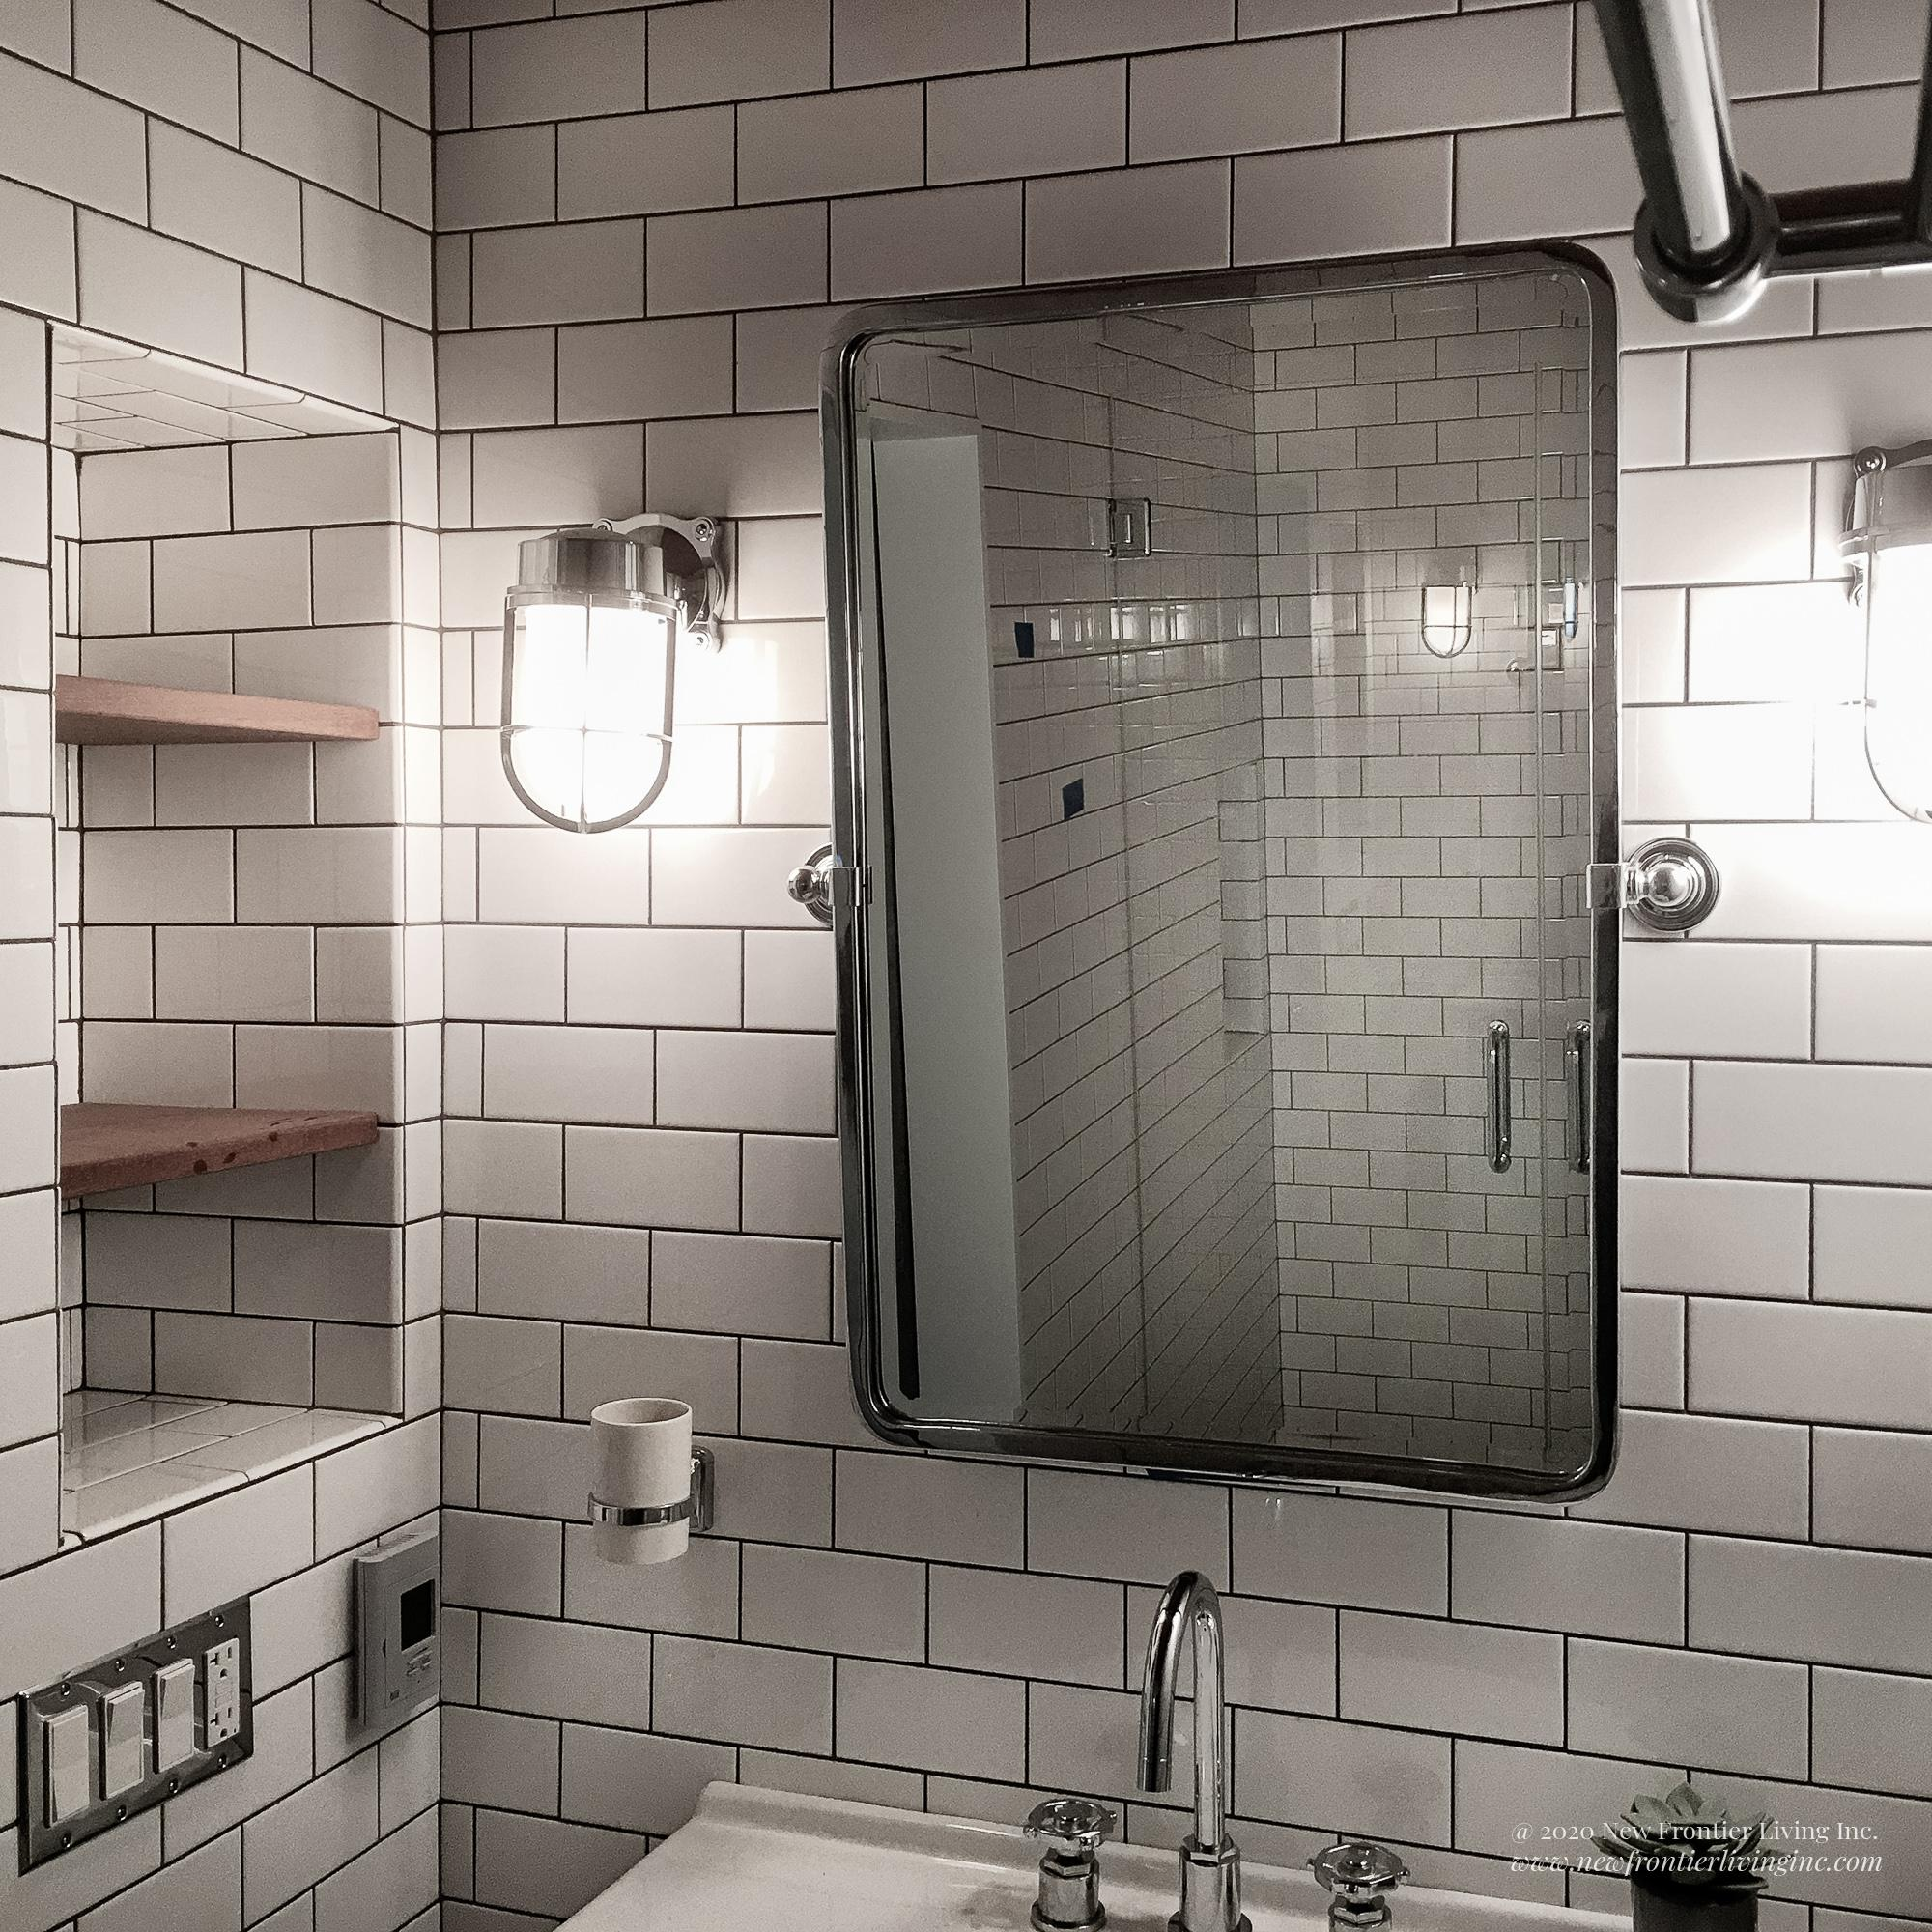 Traditional white ceramic bathroom mirror above sink close-up